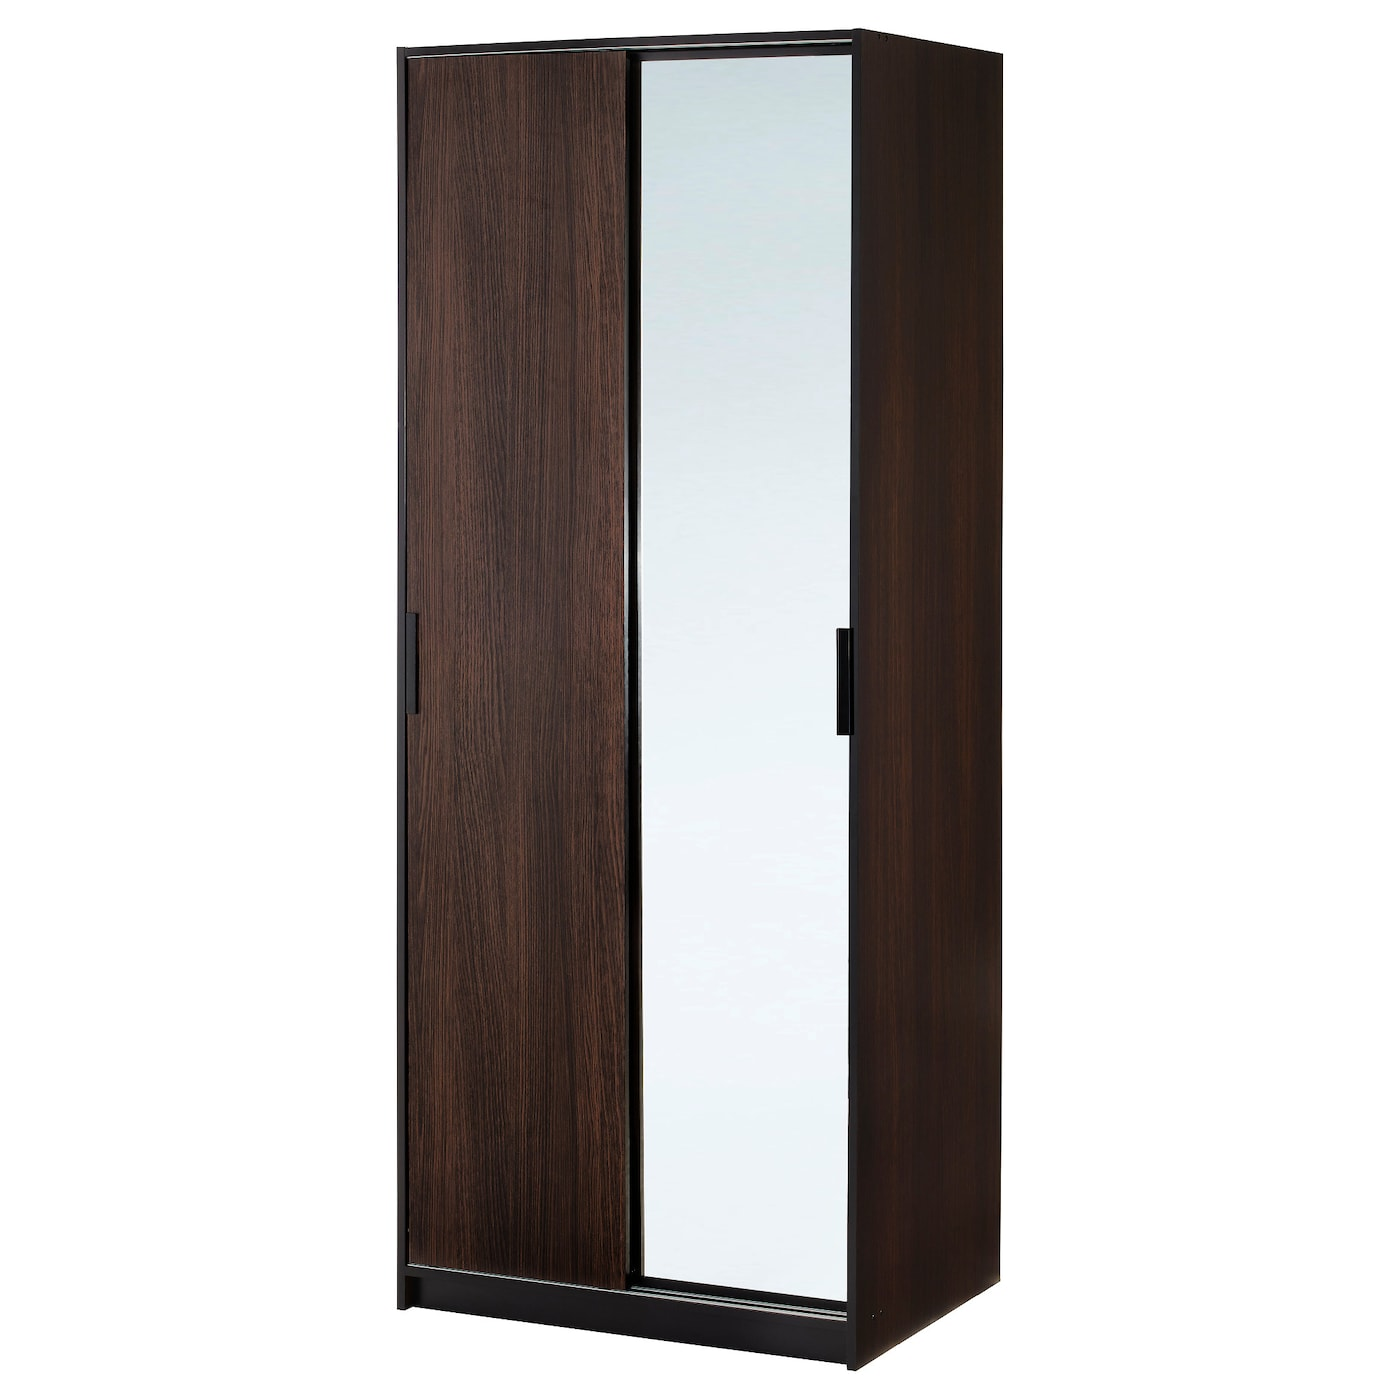 trysil armoire penderie brun fonc miroir 79 x 61 x 202 cm ikea. Black Bedroom Furniture Sets. Home Design Ideas